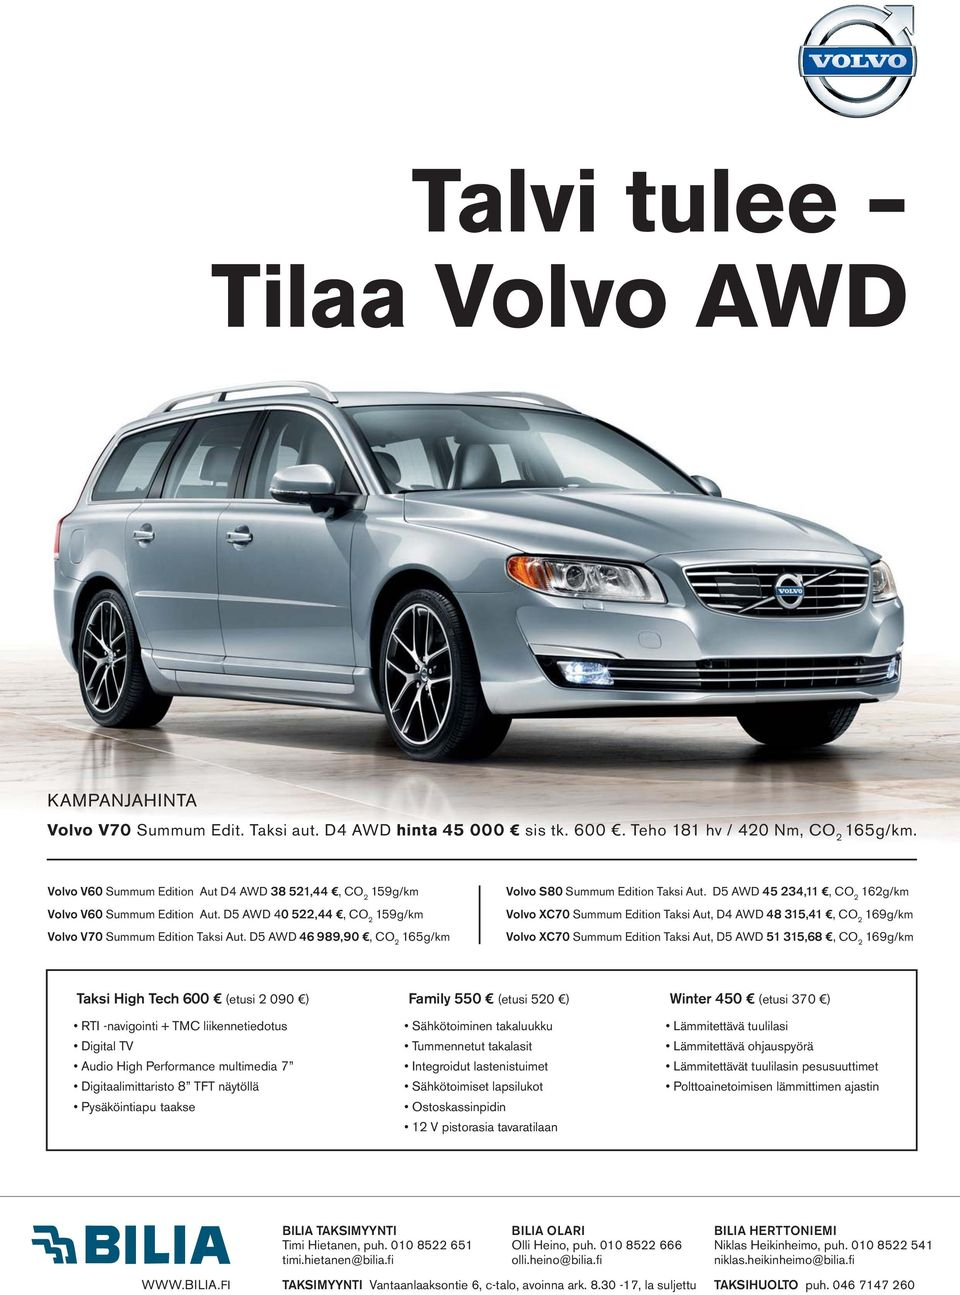 D5 AWD 46 989,90, CO 2 165g/km Volvo S80 Summum Edition Taksi Aut.